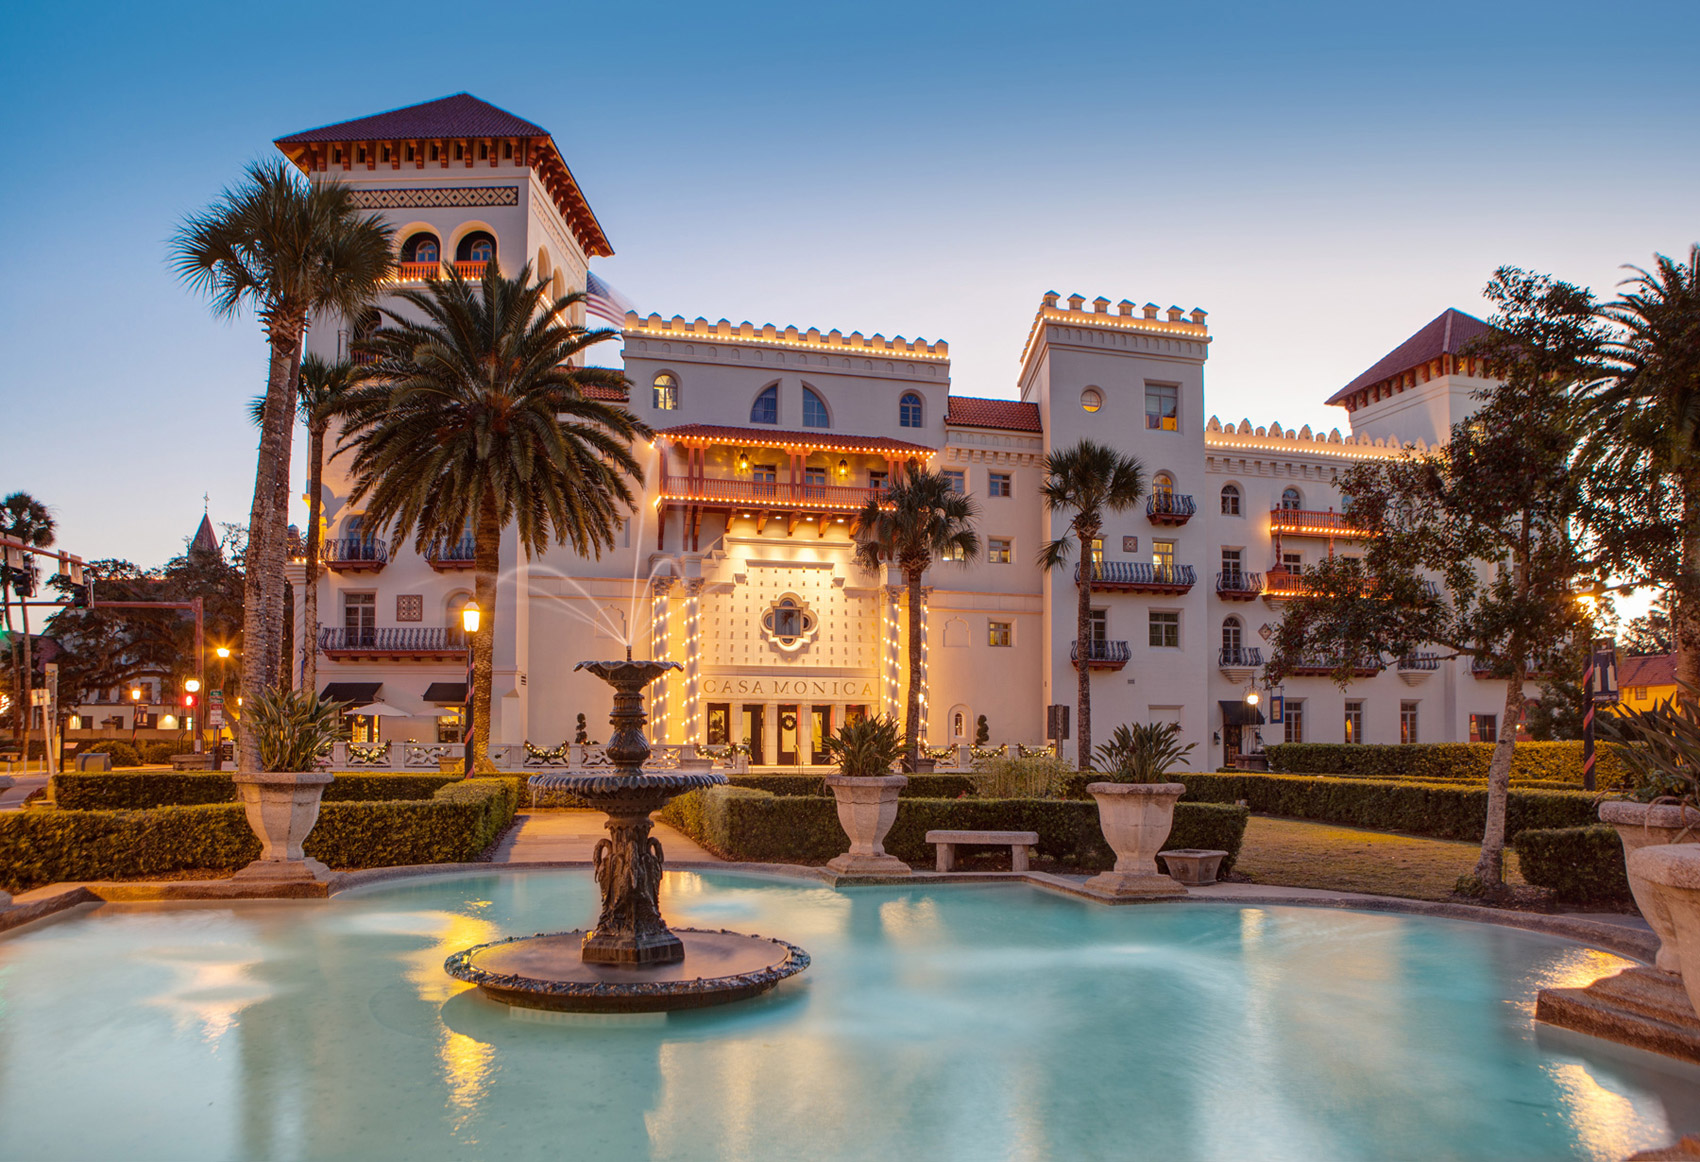 Bags Launched A New Valet Parking Operation At St Augustine S Casa Monica Hotel This Year